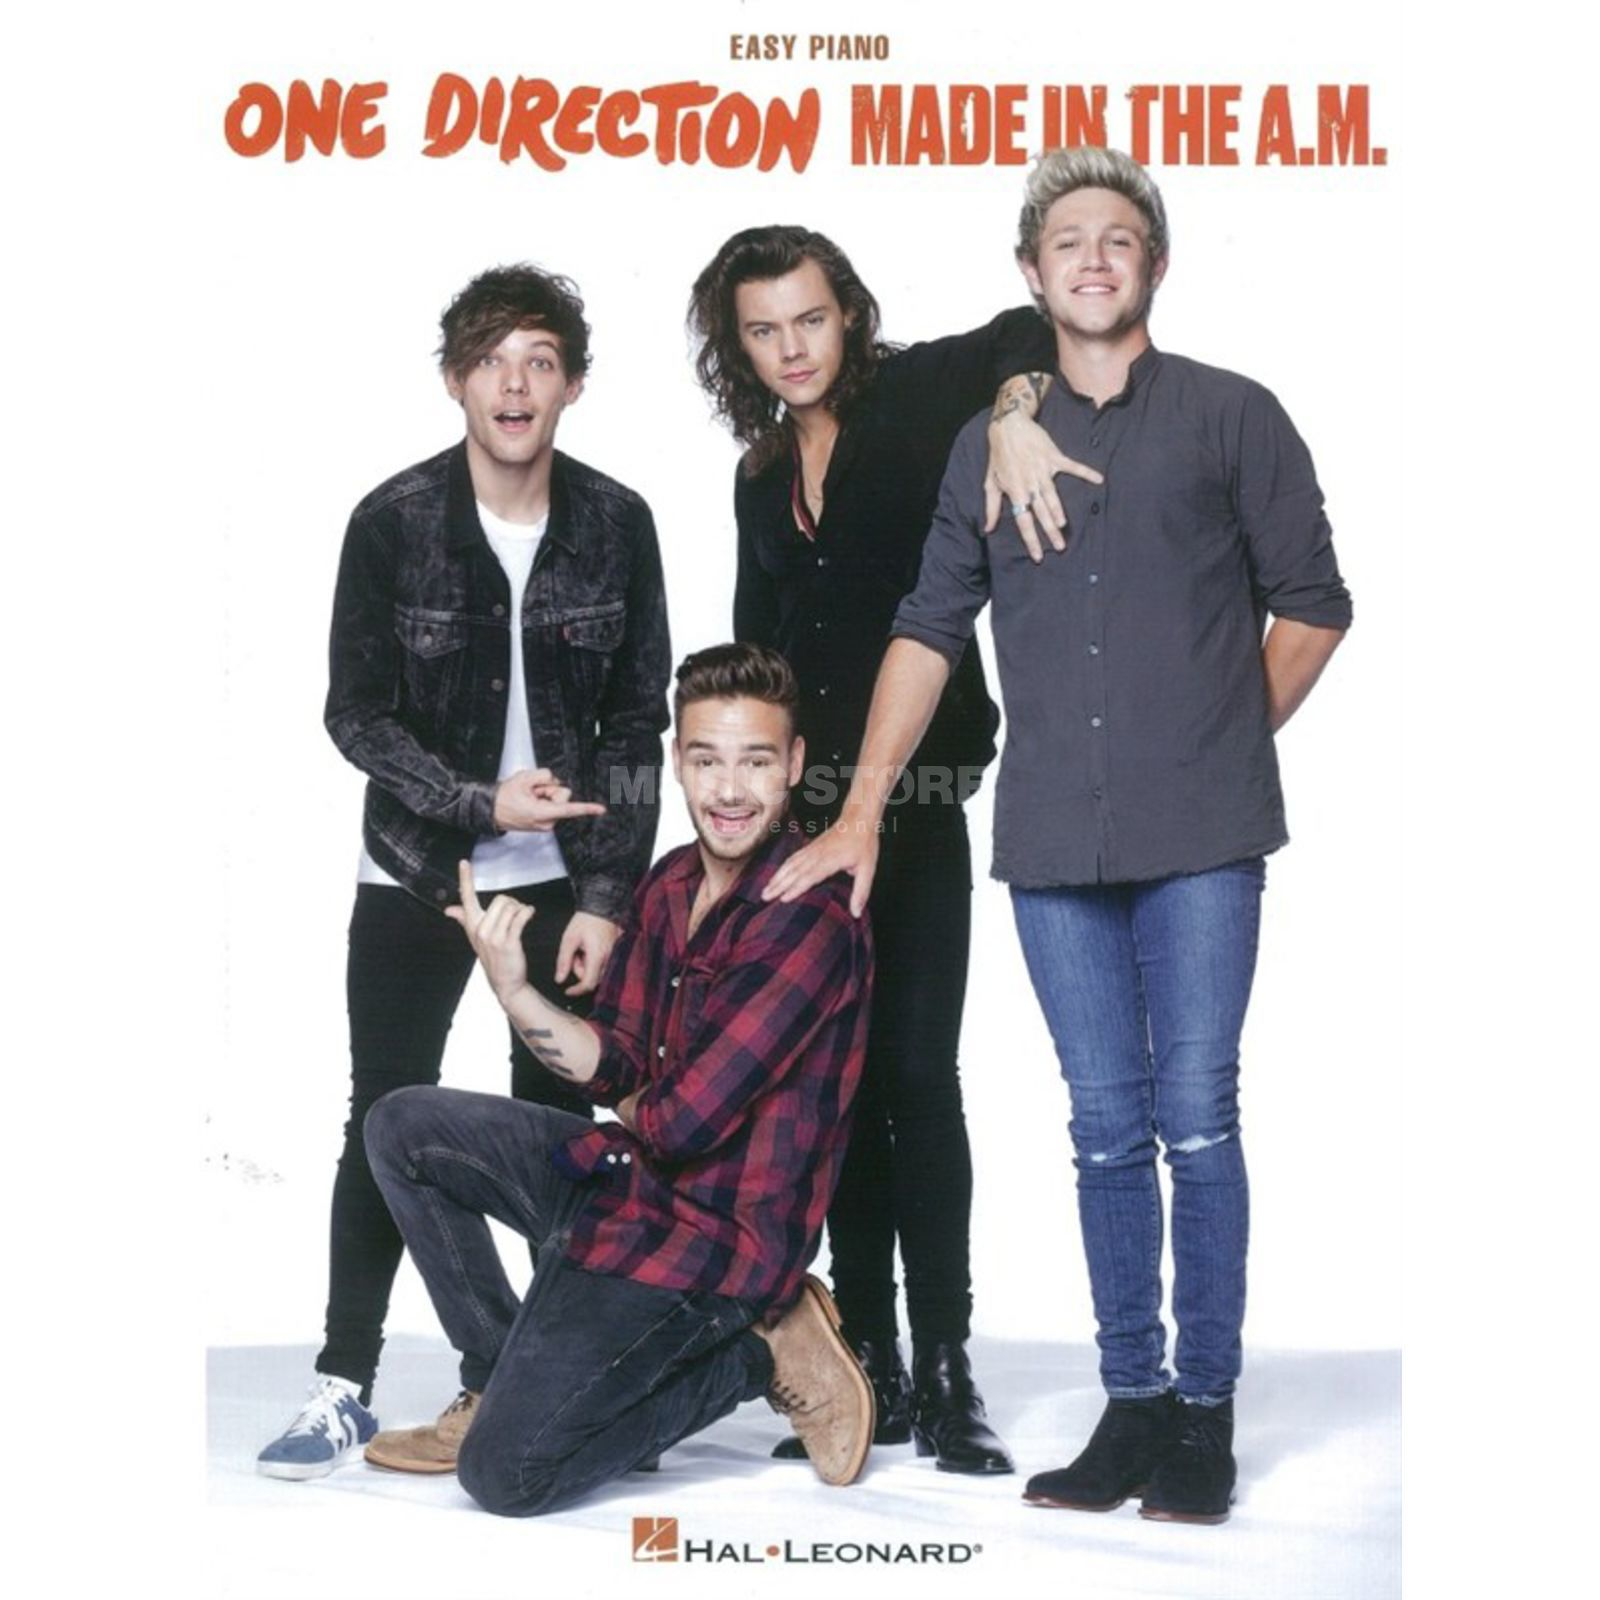 Hal Leonard One Direction: Made In The A.M. Easy Piano/Texte & Akkorde Produktbild